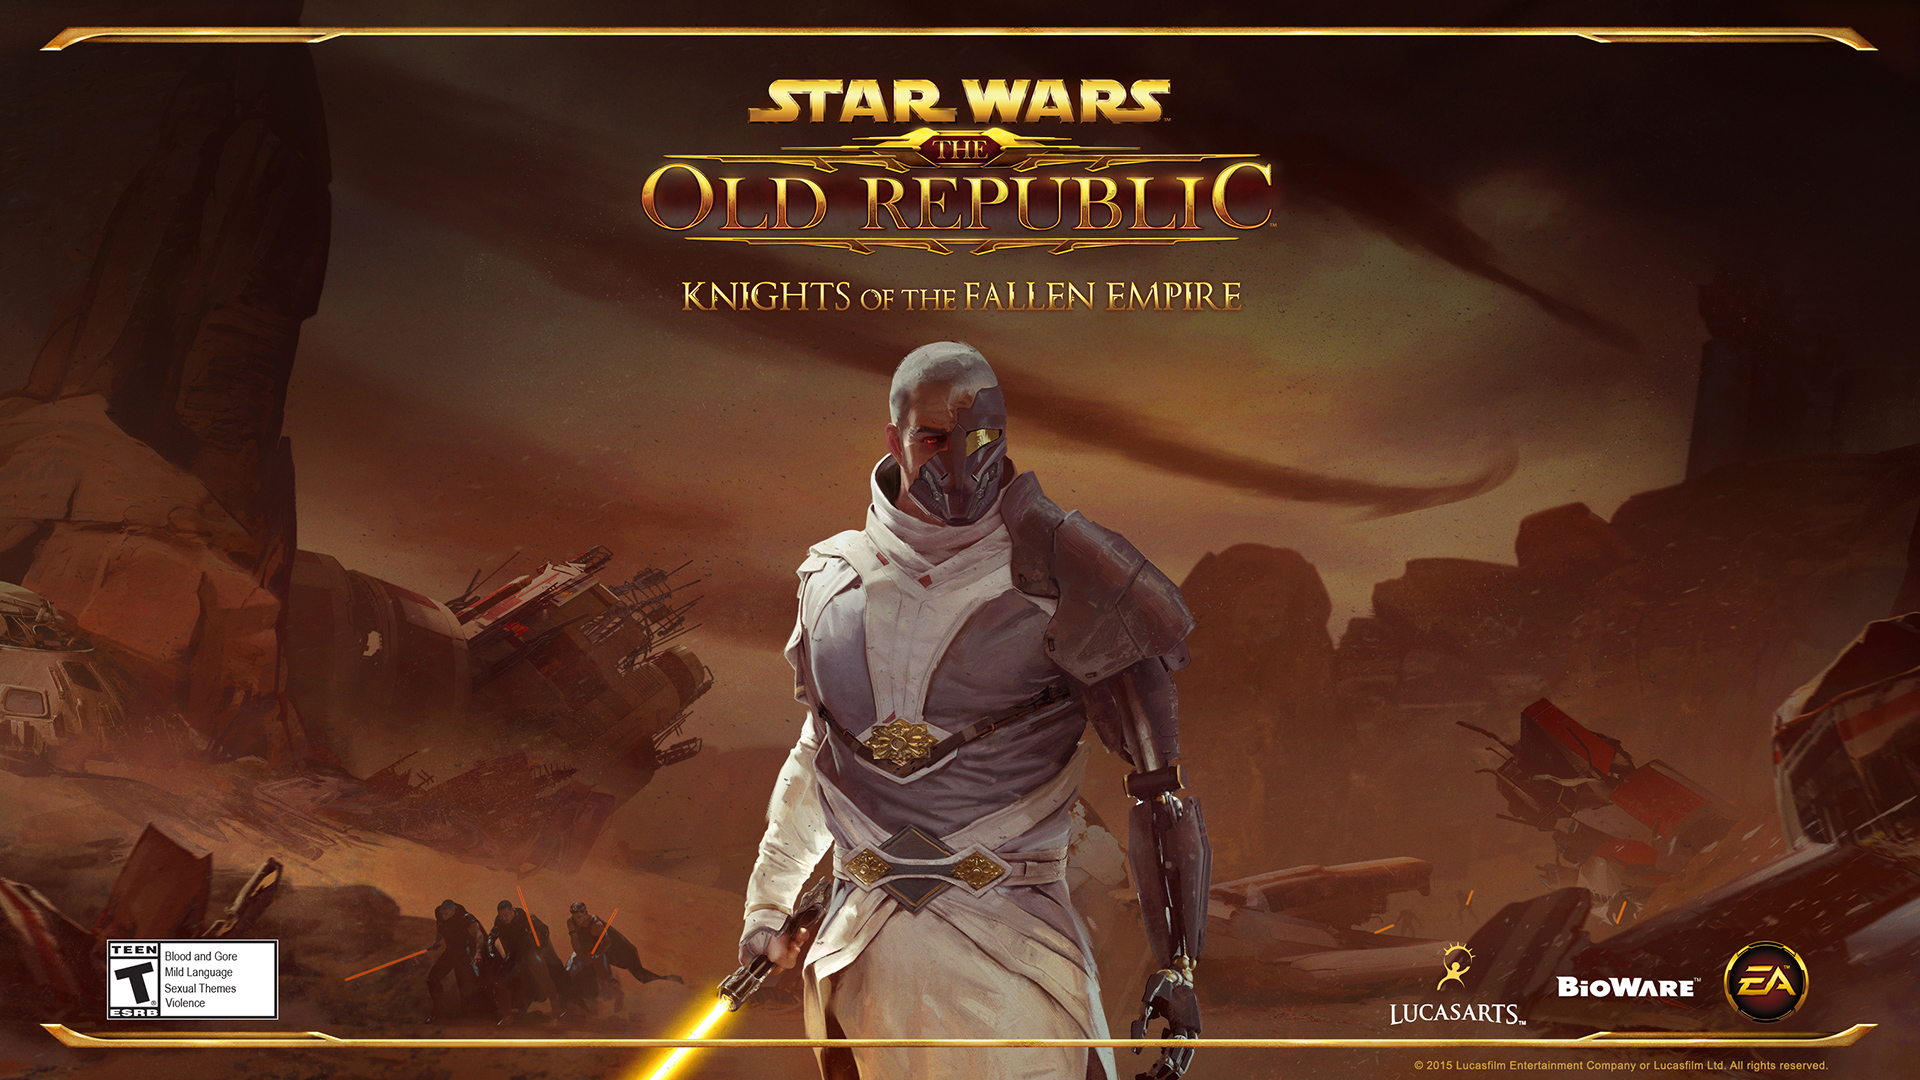 Fix star wars: the old republic windows 10 issues.